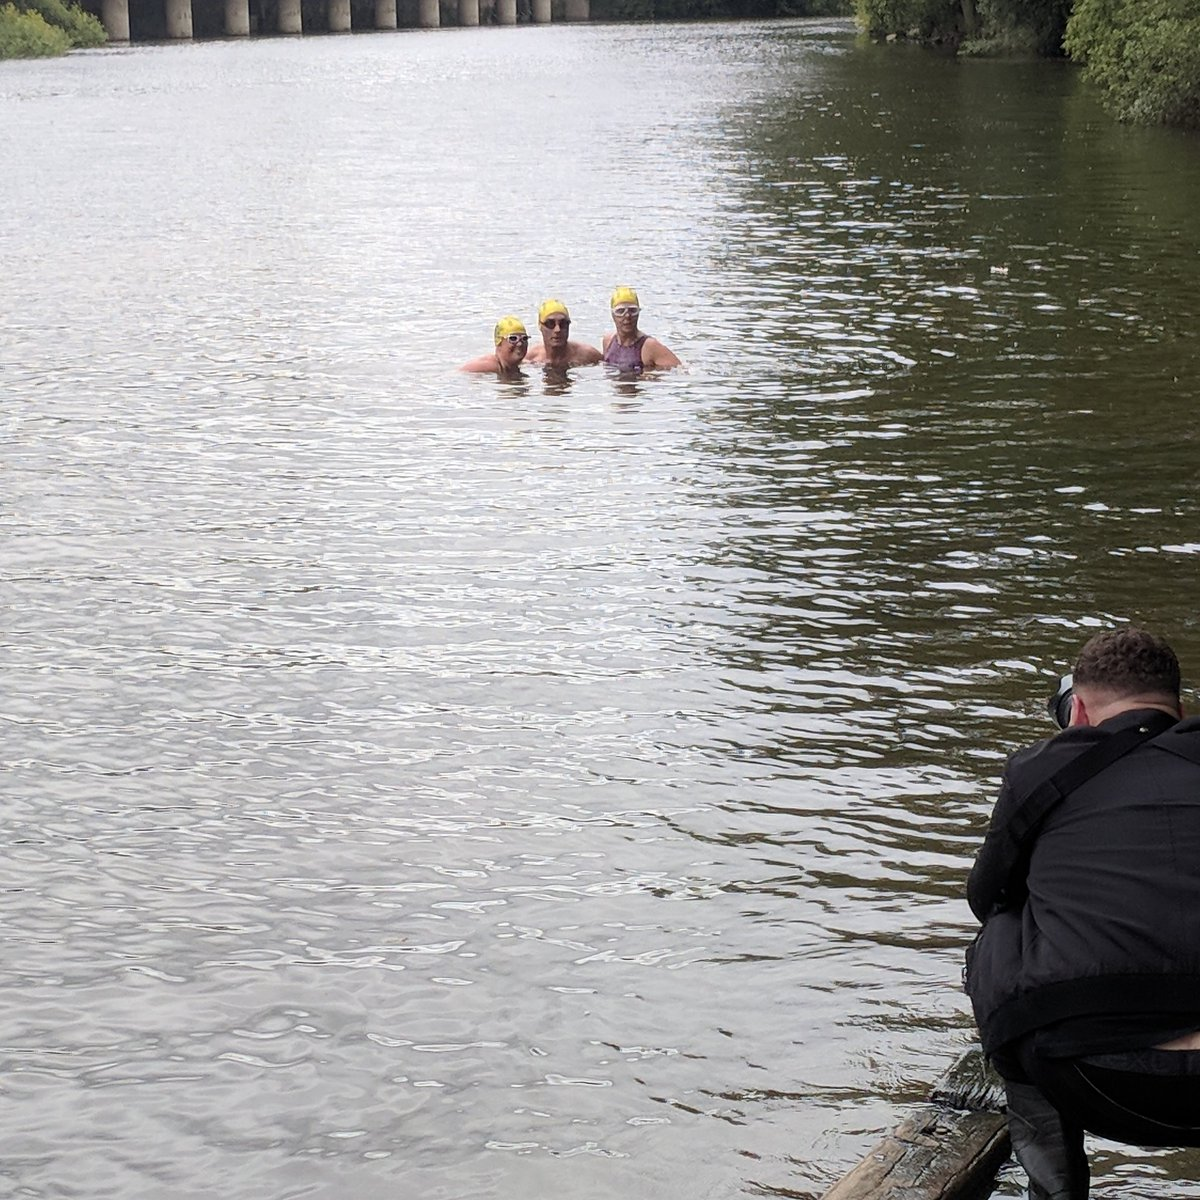 Met with the English Channel swimmers in Shrewsbury yesterday. Just a few days later they were throwing themselves back into the River Severn for a photoshoot with @JamieRicketts_. Full feature in Friday&#39;s @shropsweekly. #Englishchannel #swimming #shropshireweekly #Shrewsbury<br>http://pic.twitter.com/yZP28qZPOQ